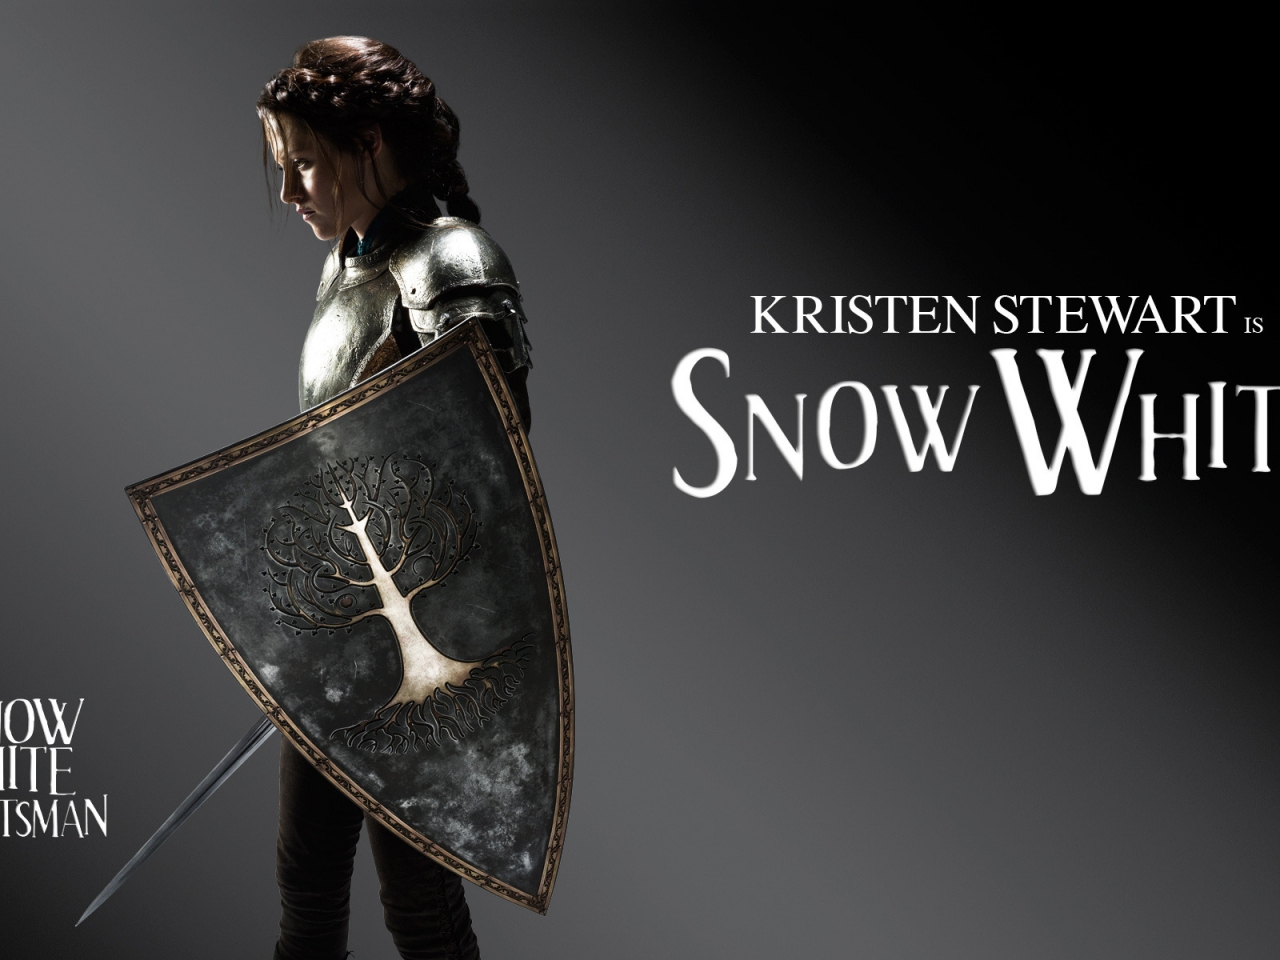 Snow White 2012 for 1280 x 960 resolution